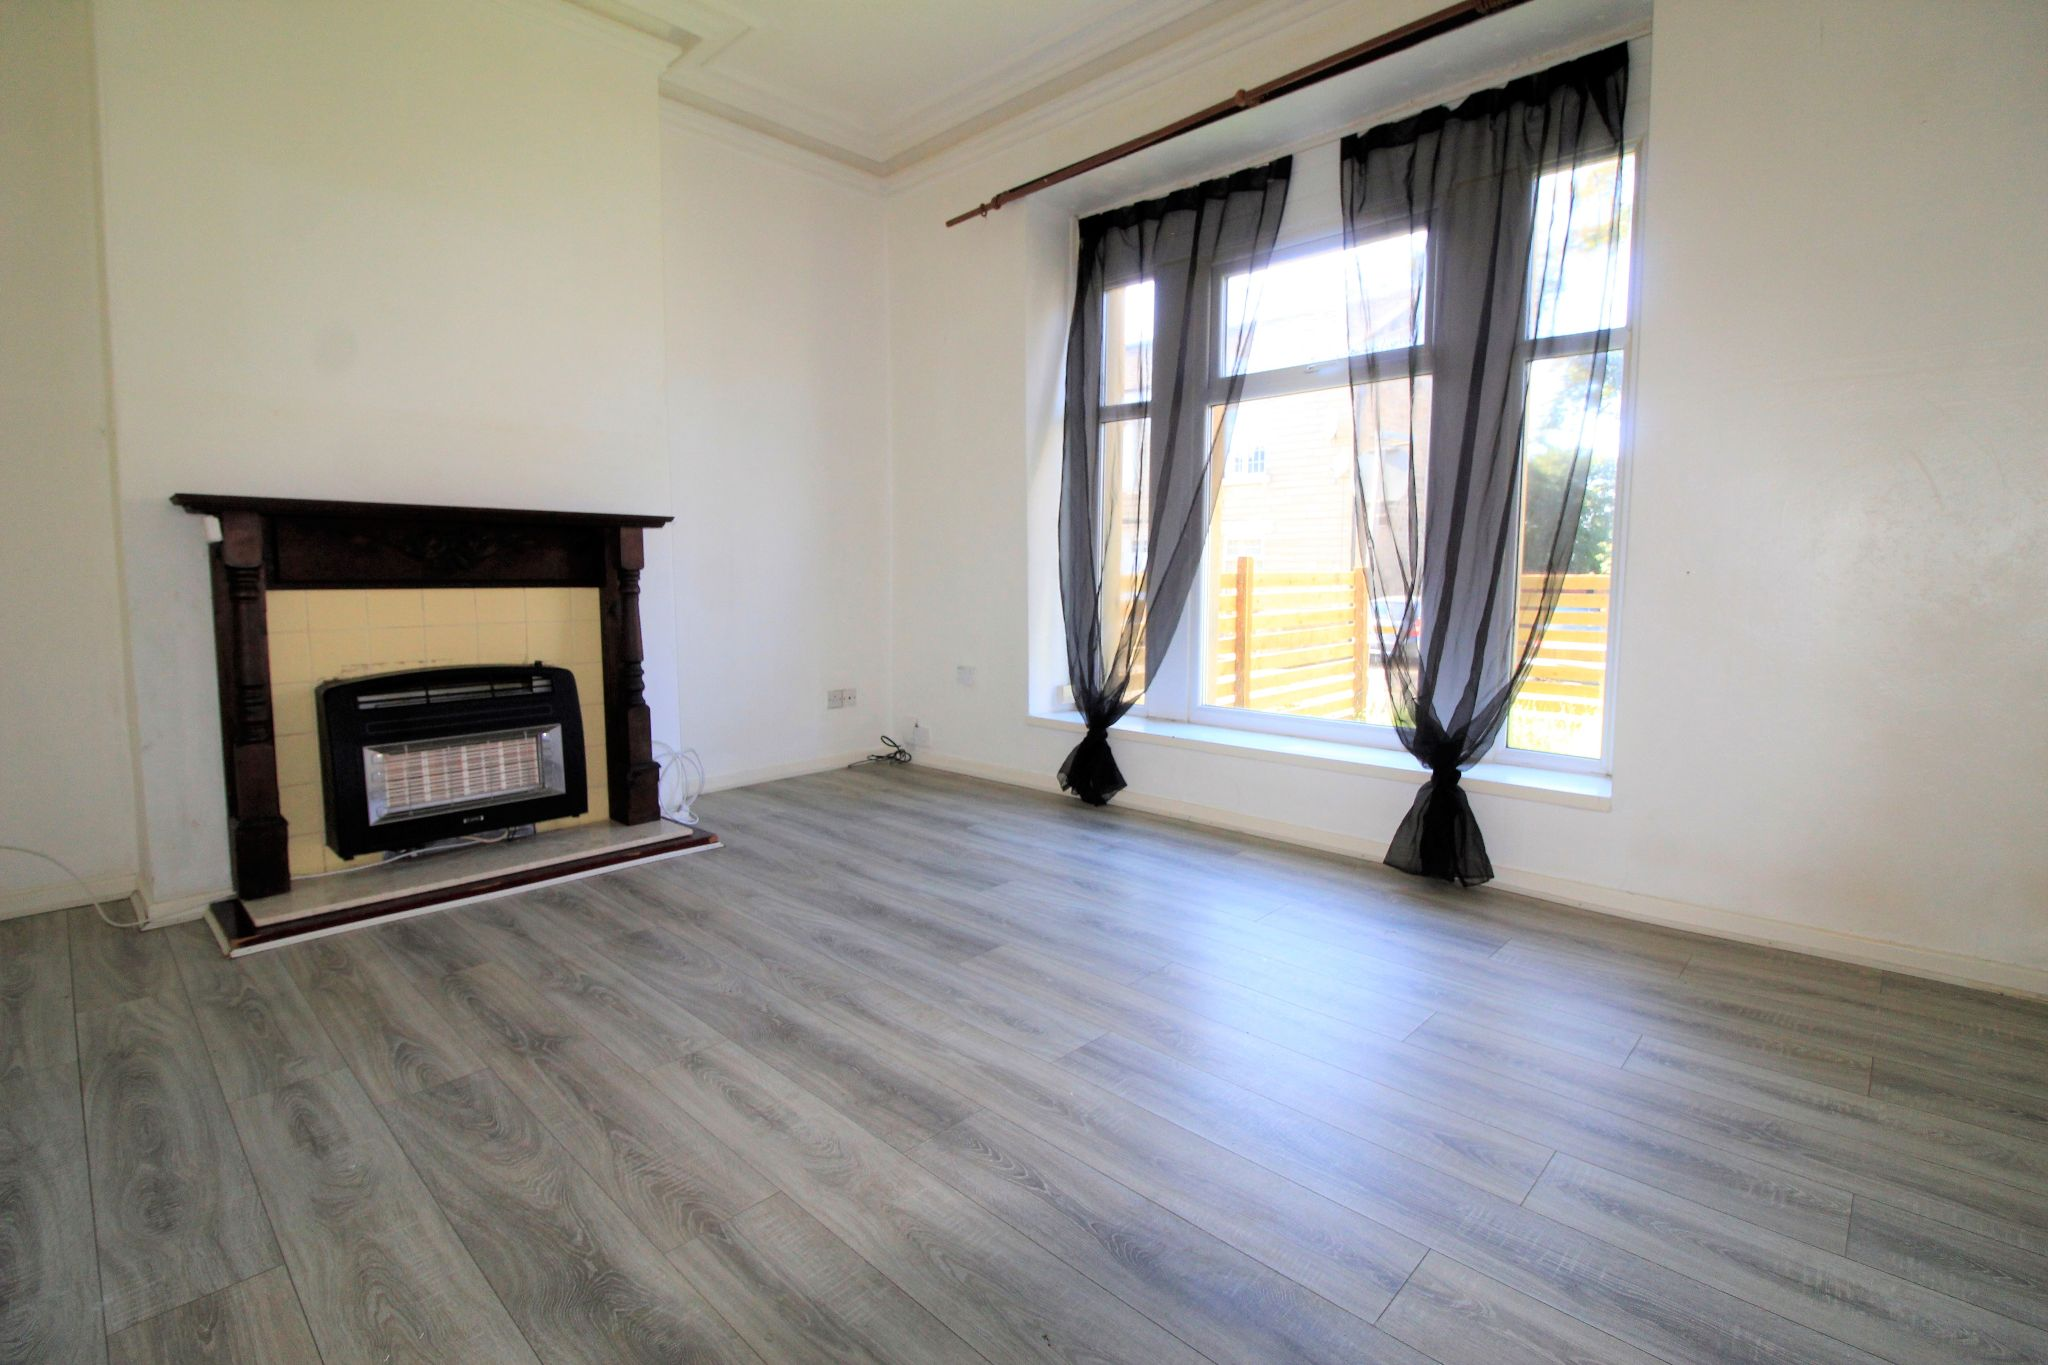 1 bedroom flat flat/apartment Let in Huddersfield - Photograph 2